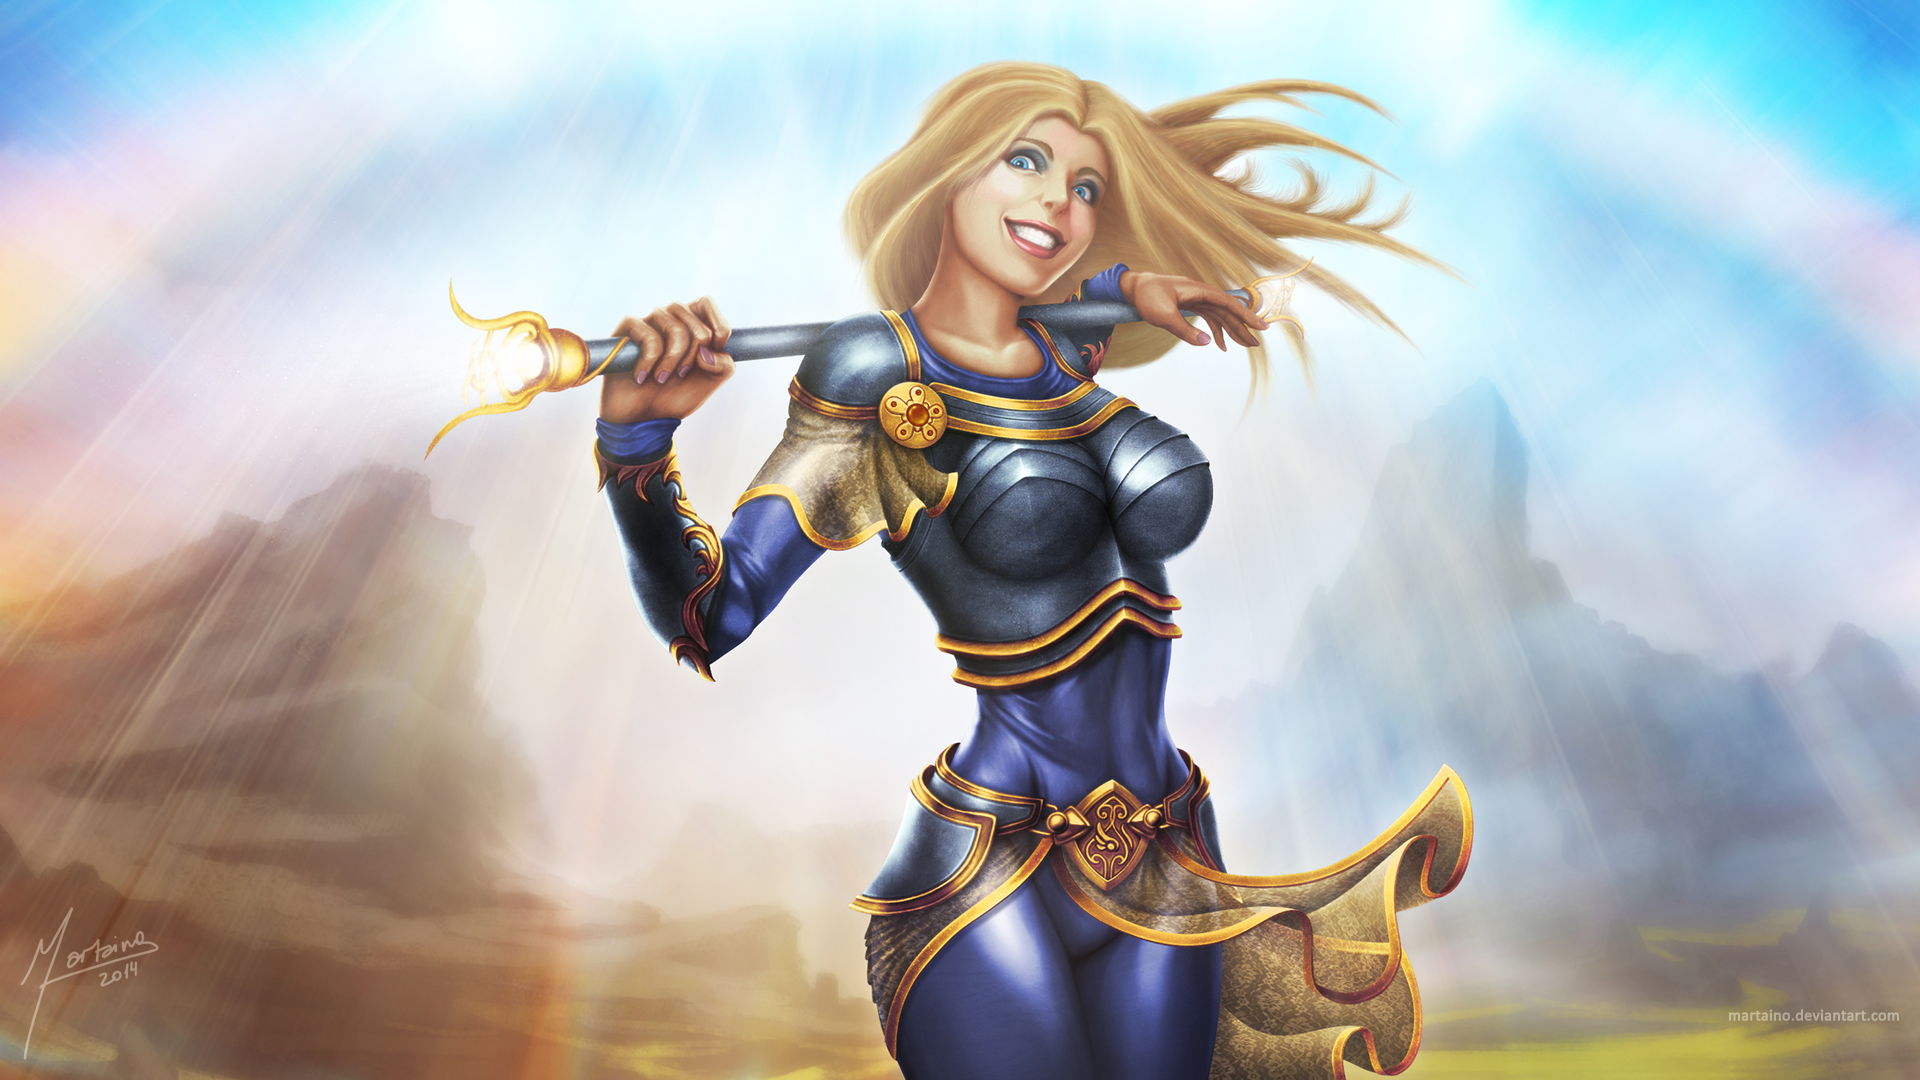 Sexy league of legends lux